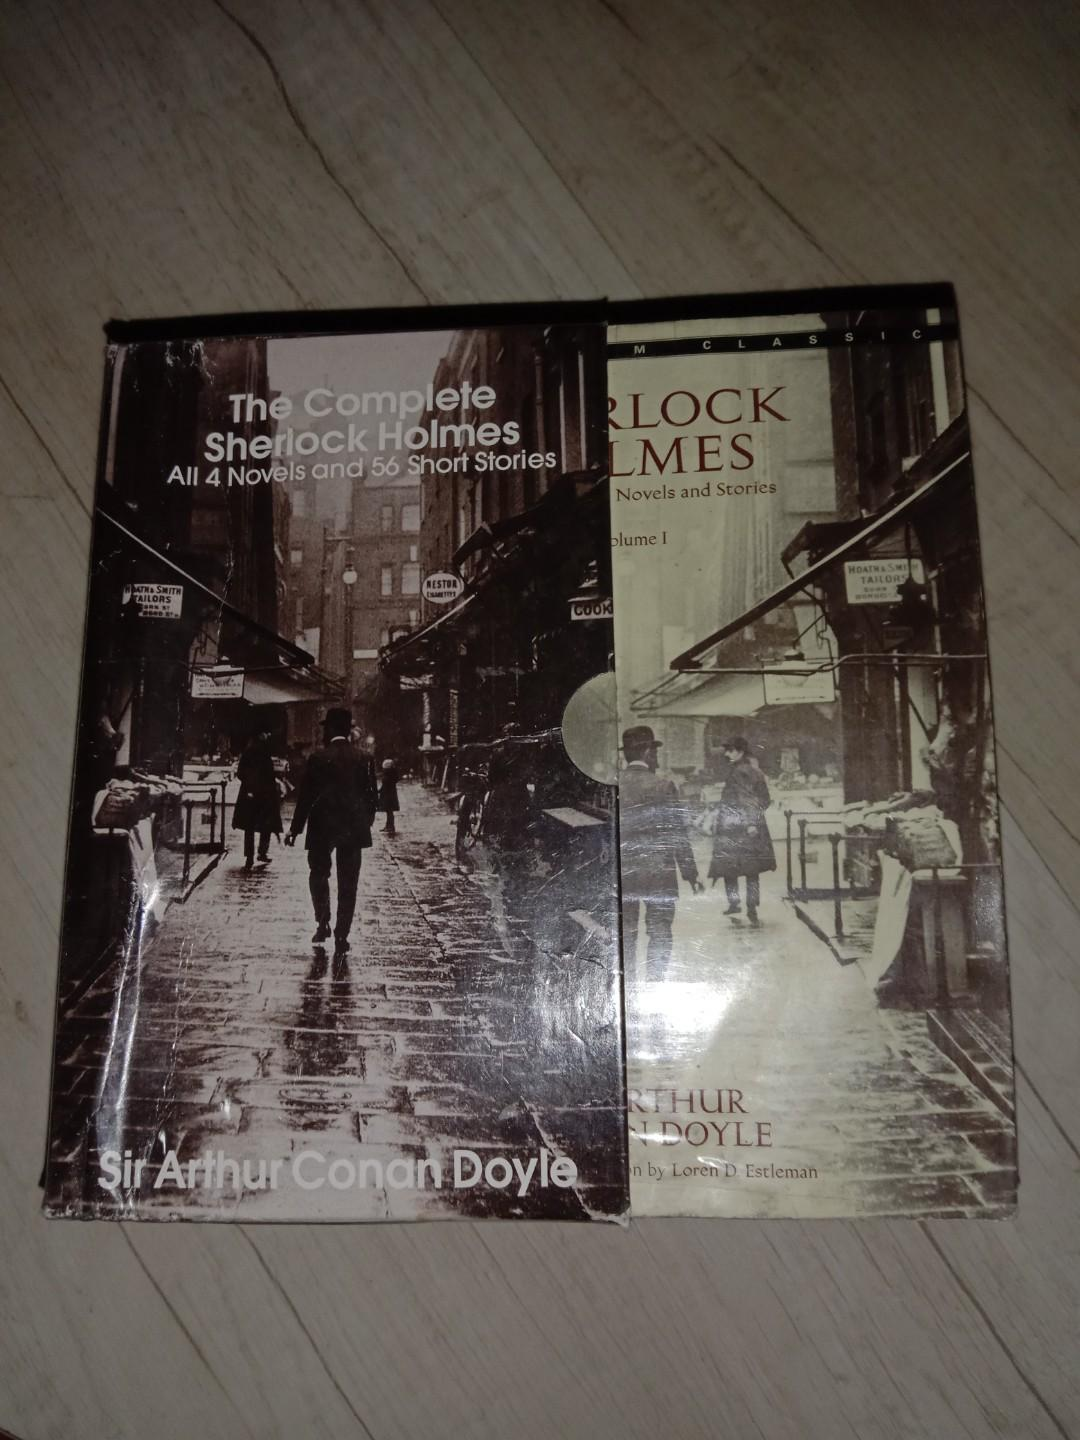 The complete Sherlock Holmes (All 4 novels and 56 short stories) by Sir Arthur Conan Doyle